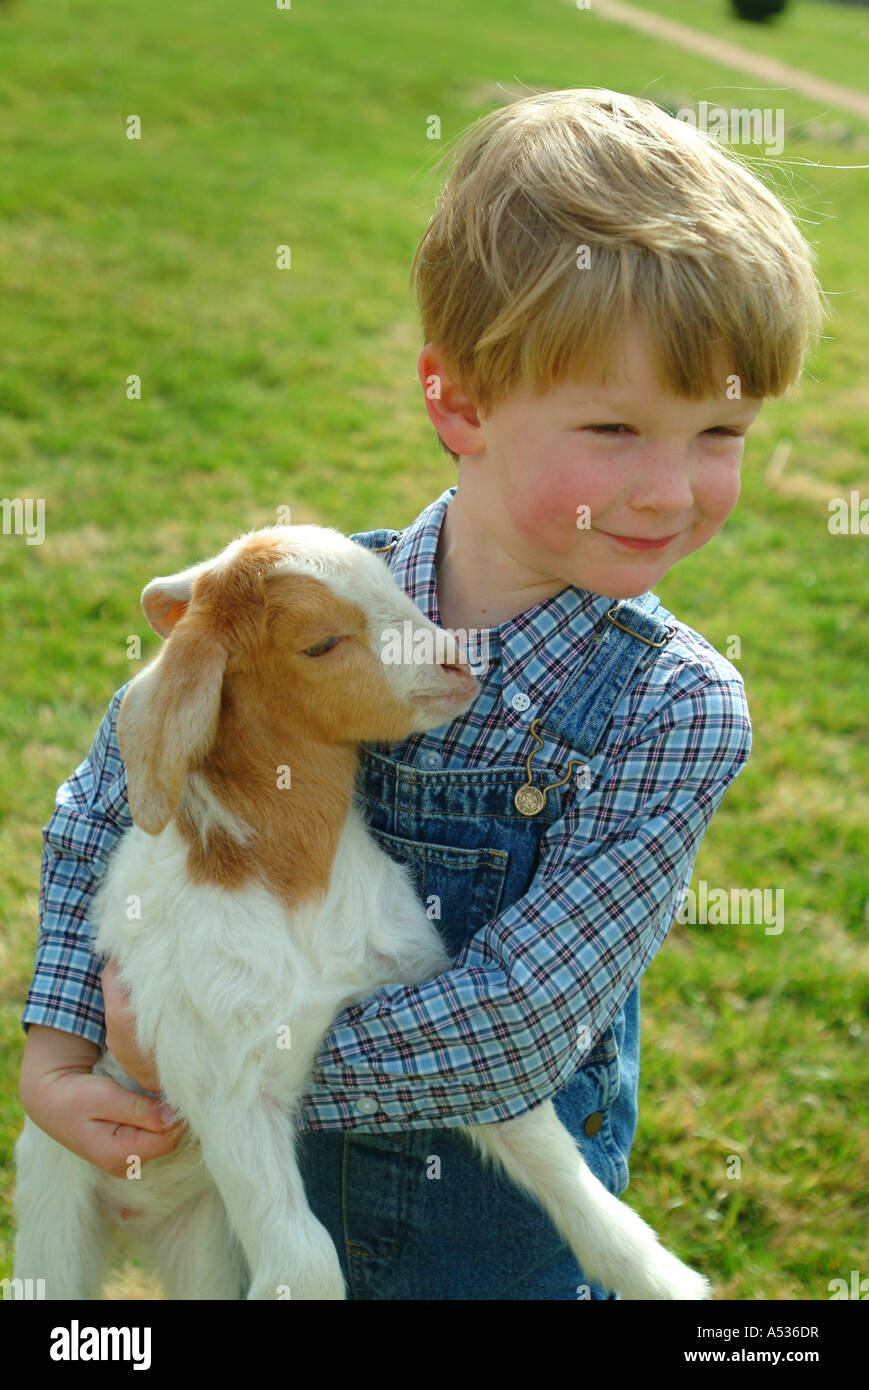 a-boy-and-a-baby-goat-on-a-farm-in-virginia-A536DR.jpg